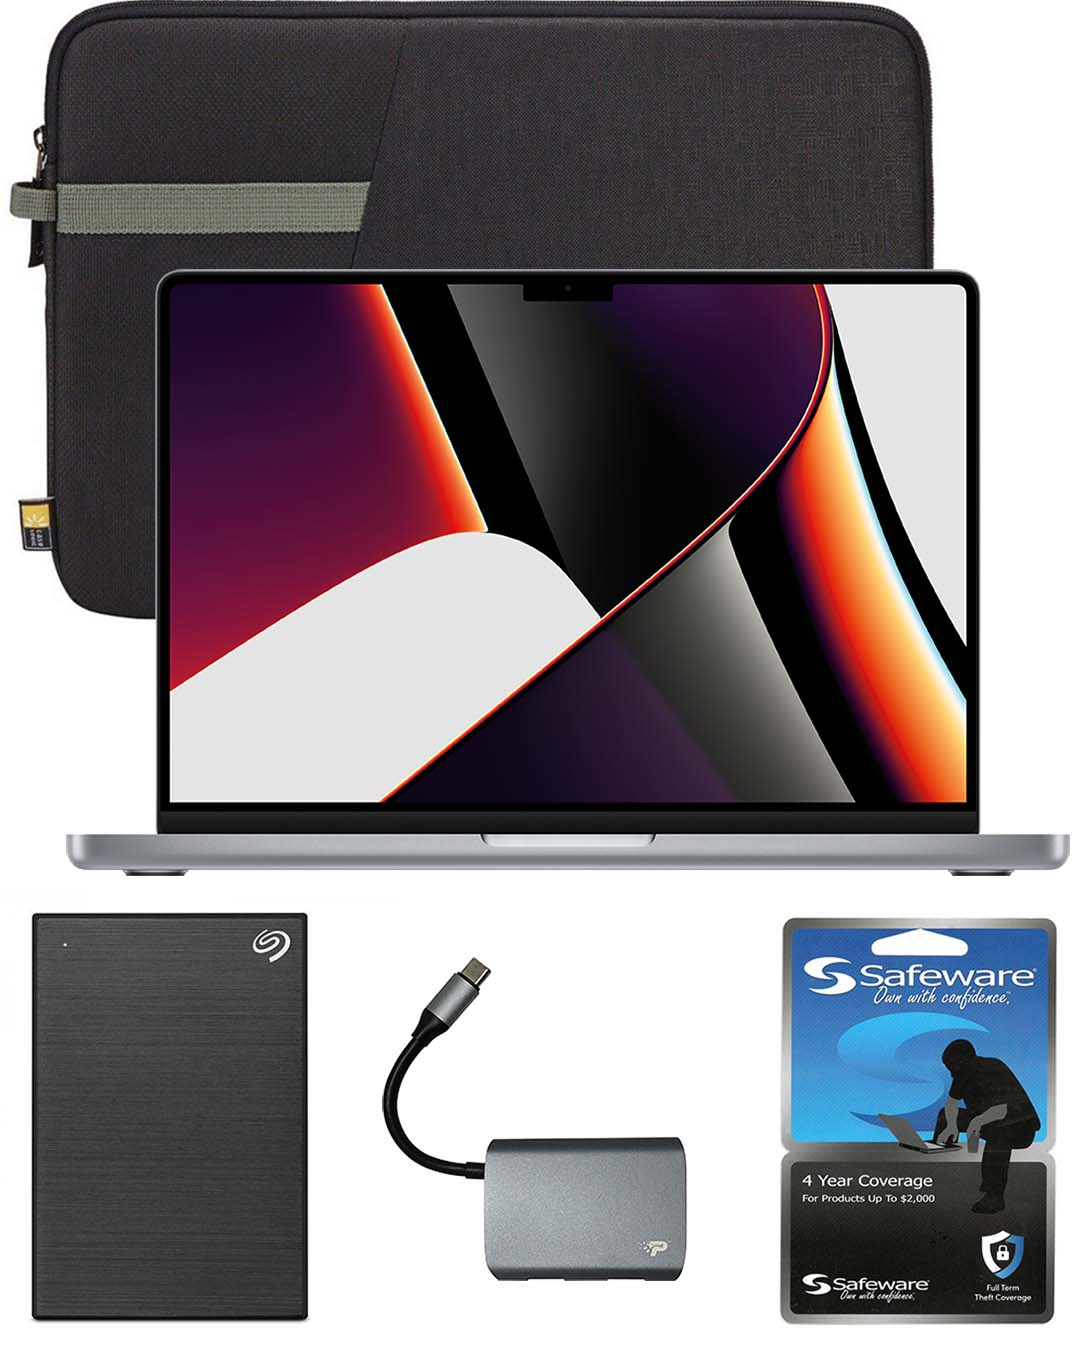 13-inch MacBook Pro with Safeware 4 year warranty, 13-inch protective sleeve, 1TB external hard drive and 3-port USB 3.0 hub